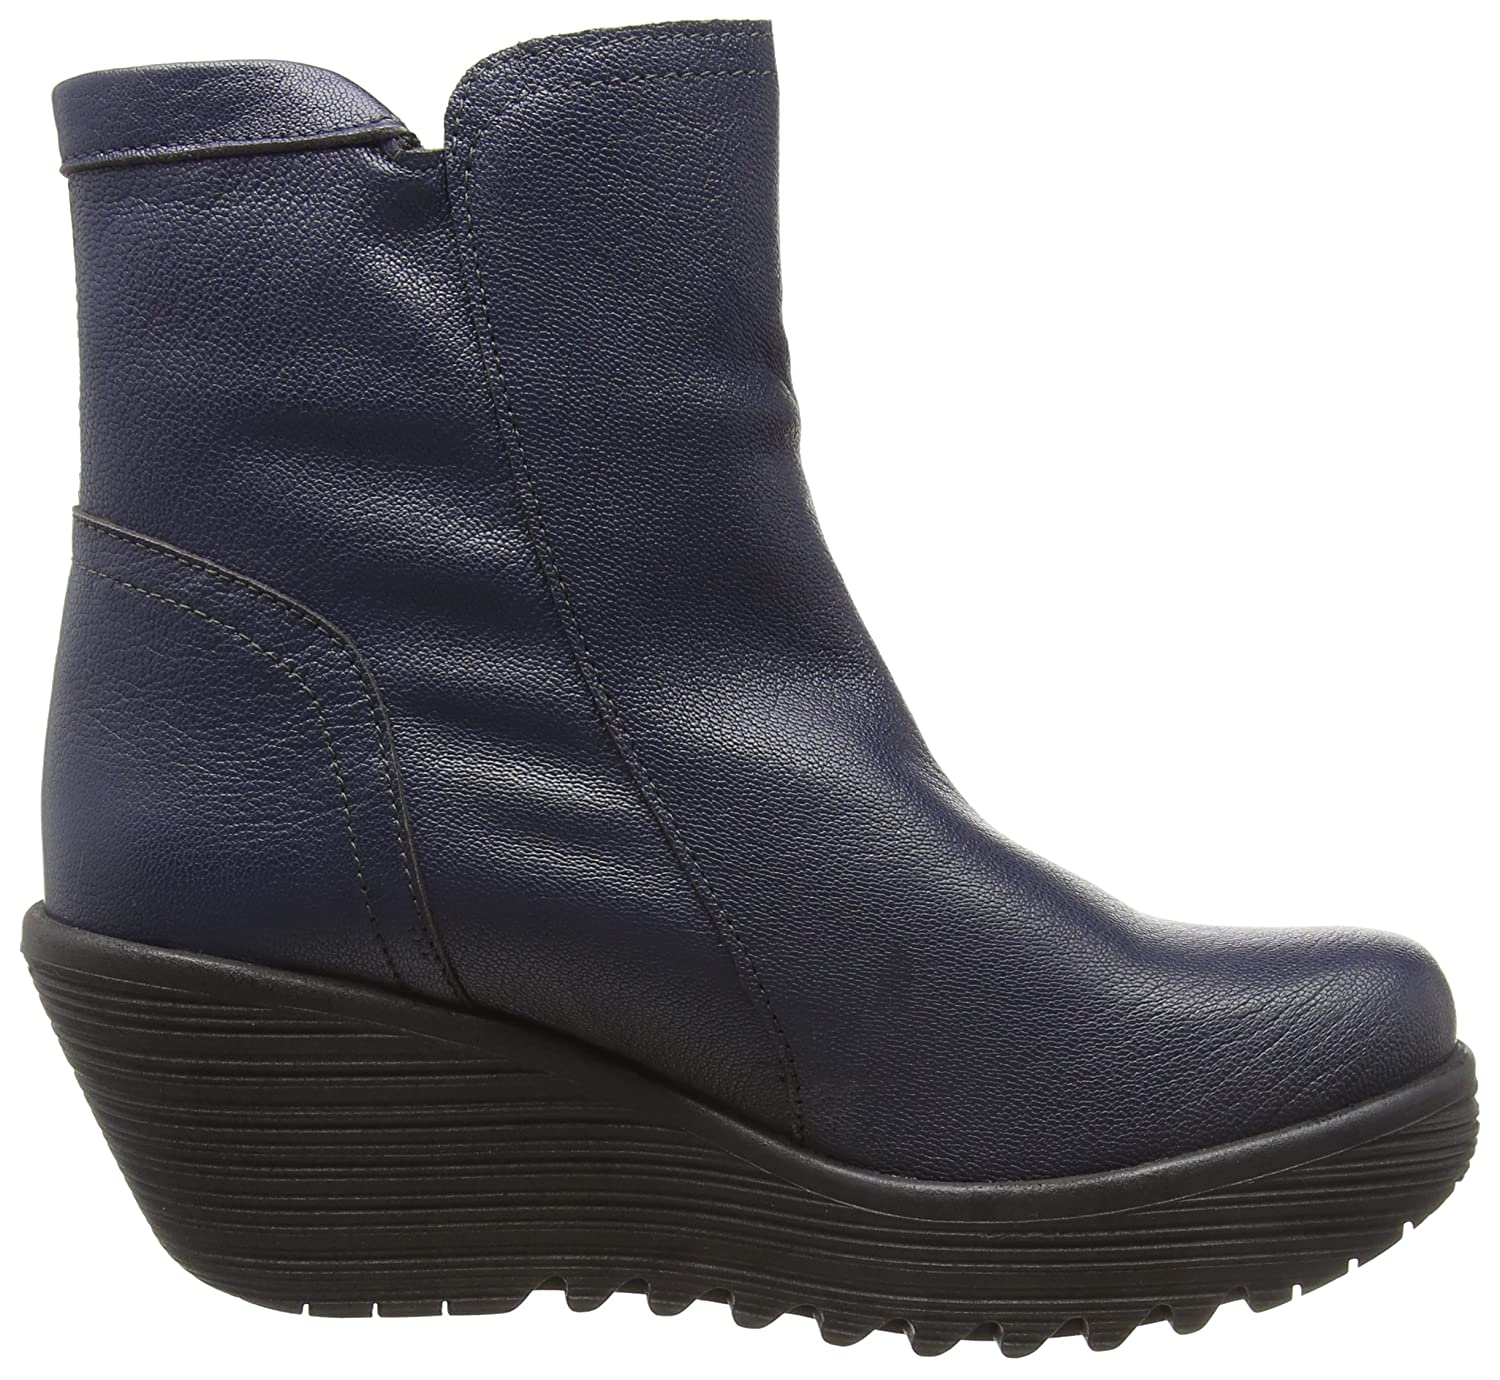 6806c8da98518 Amazon.com | FLY London Women's Yolk Mousse Leather Zip Wedge Boot Black |  Ankle & Bootie